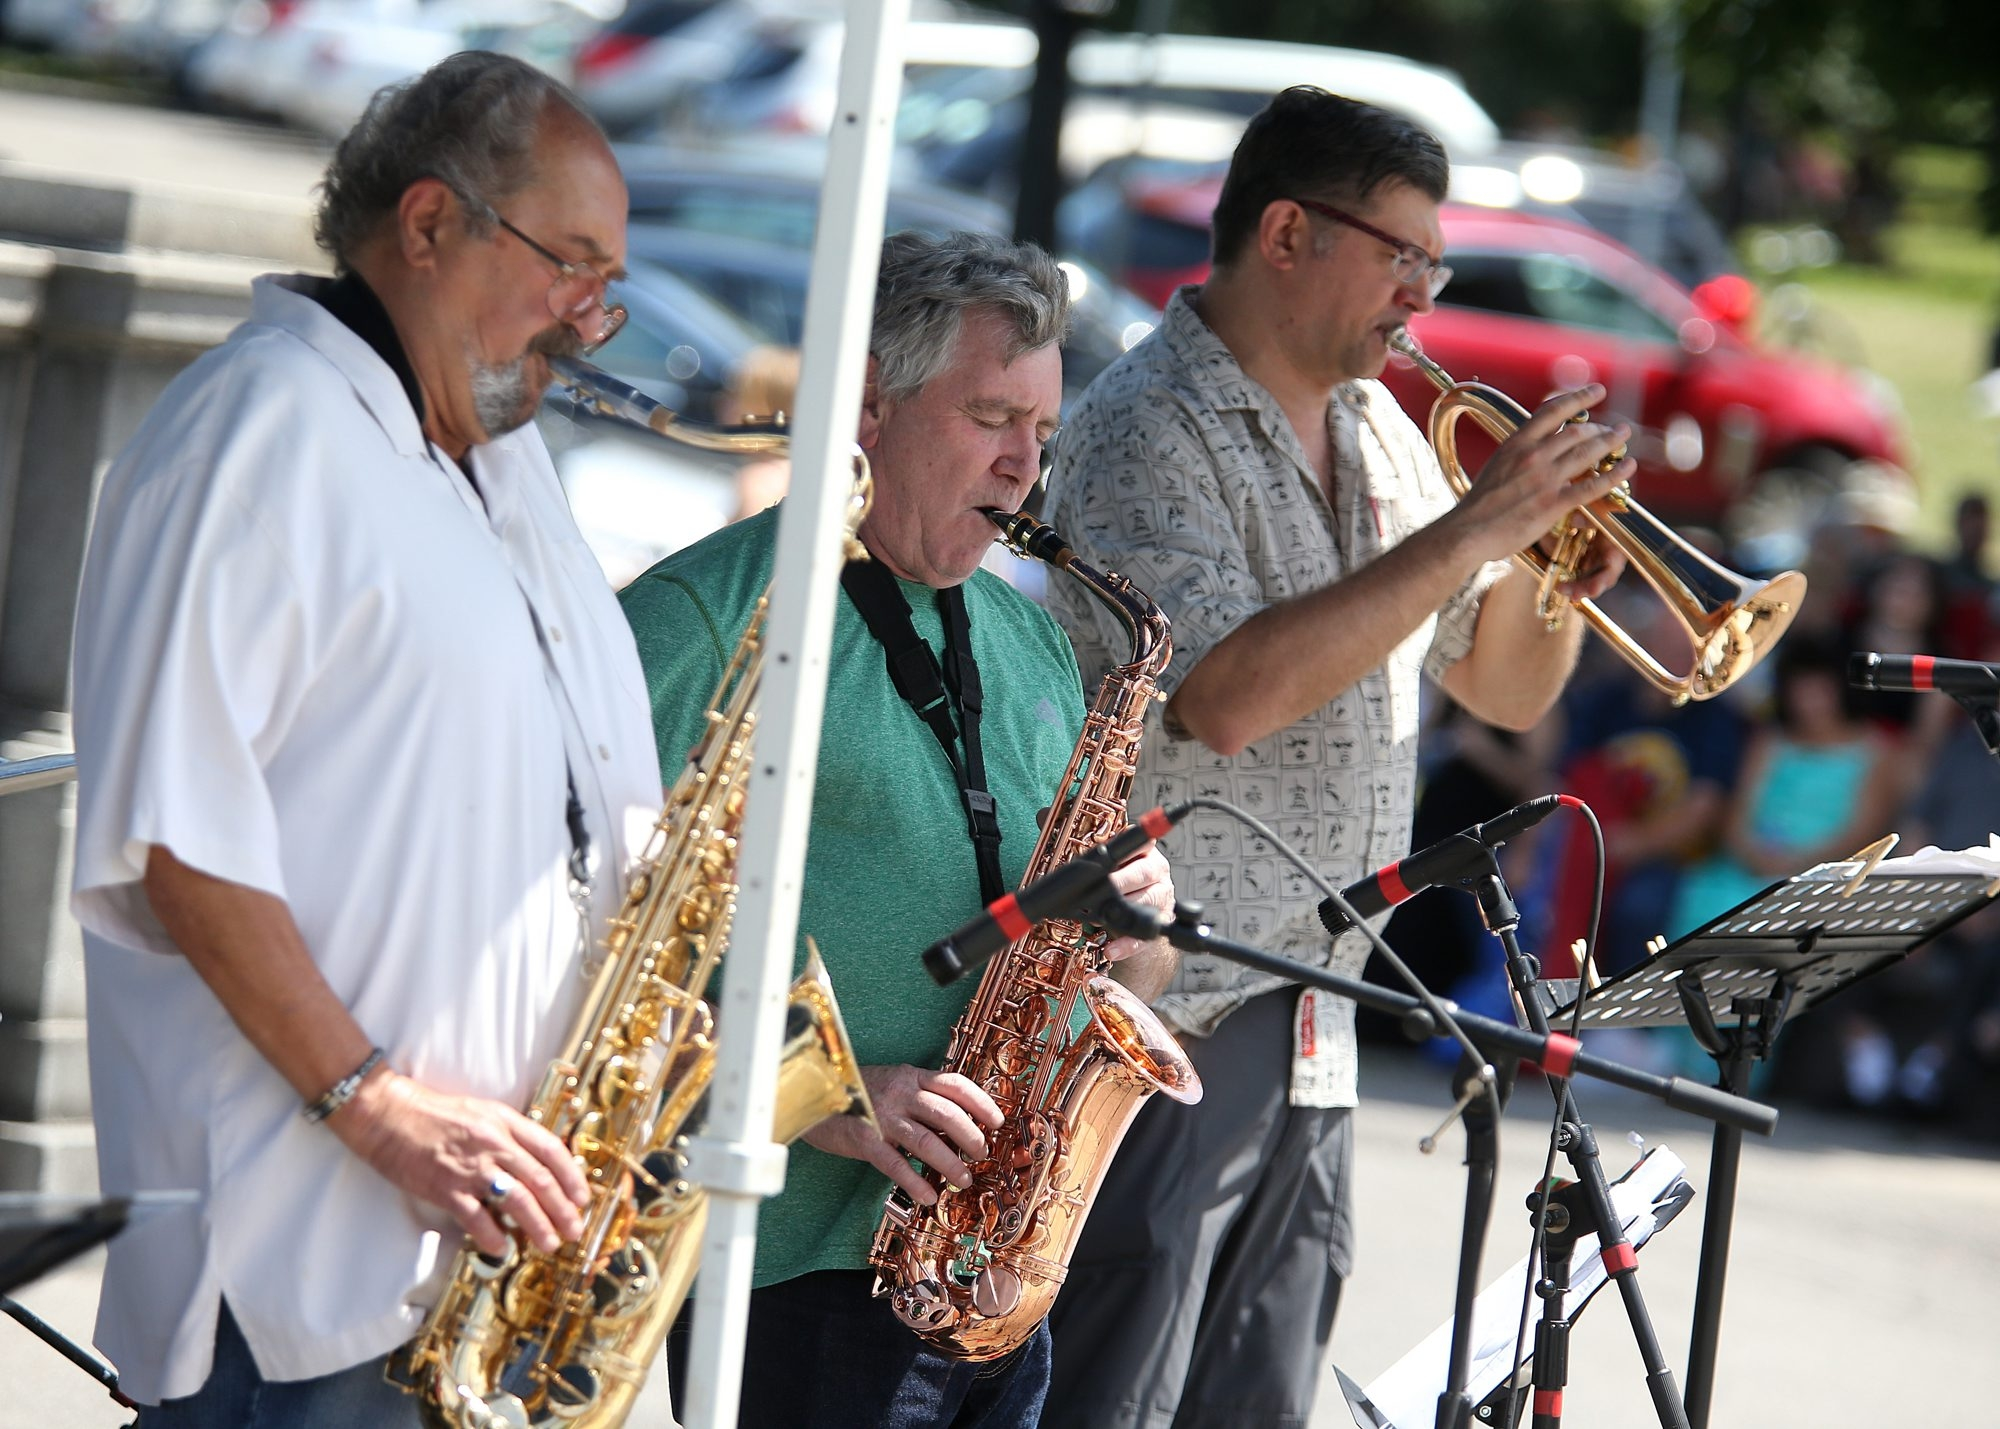 Bandleader Phil DiRe' on tenor saxophone, Jay Beckenstein on alto saxophone and Tim Clark on trumpet performed outside the Albright-Knox Art Gallery on Sunday. (Charles Lewis/Buffalo News)